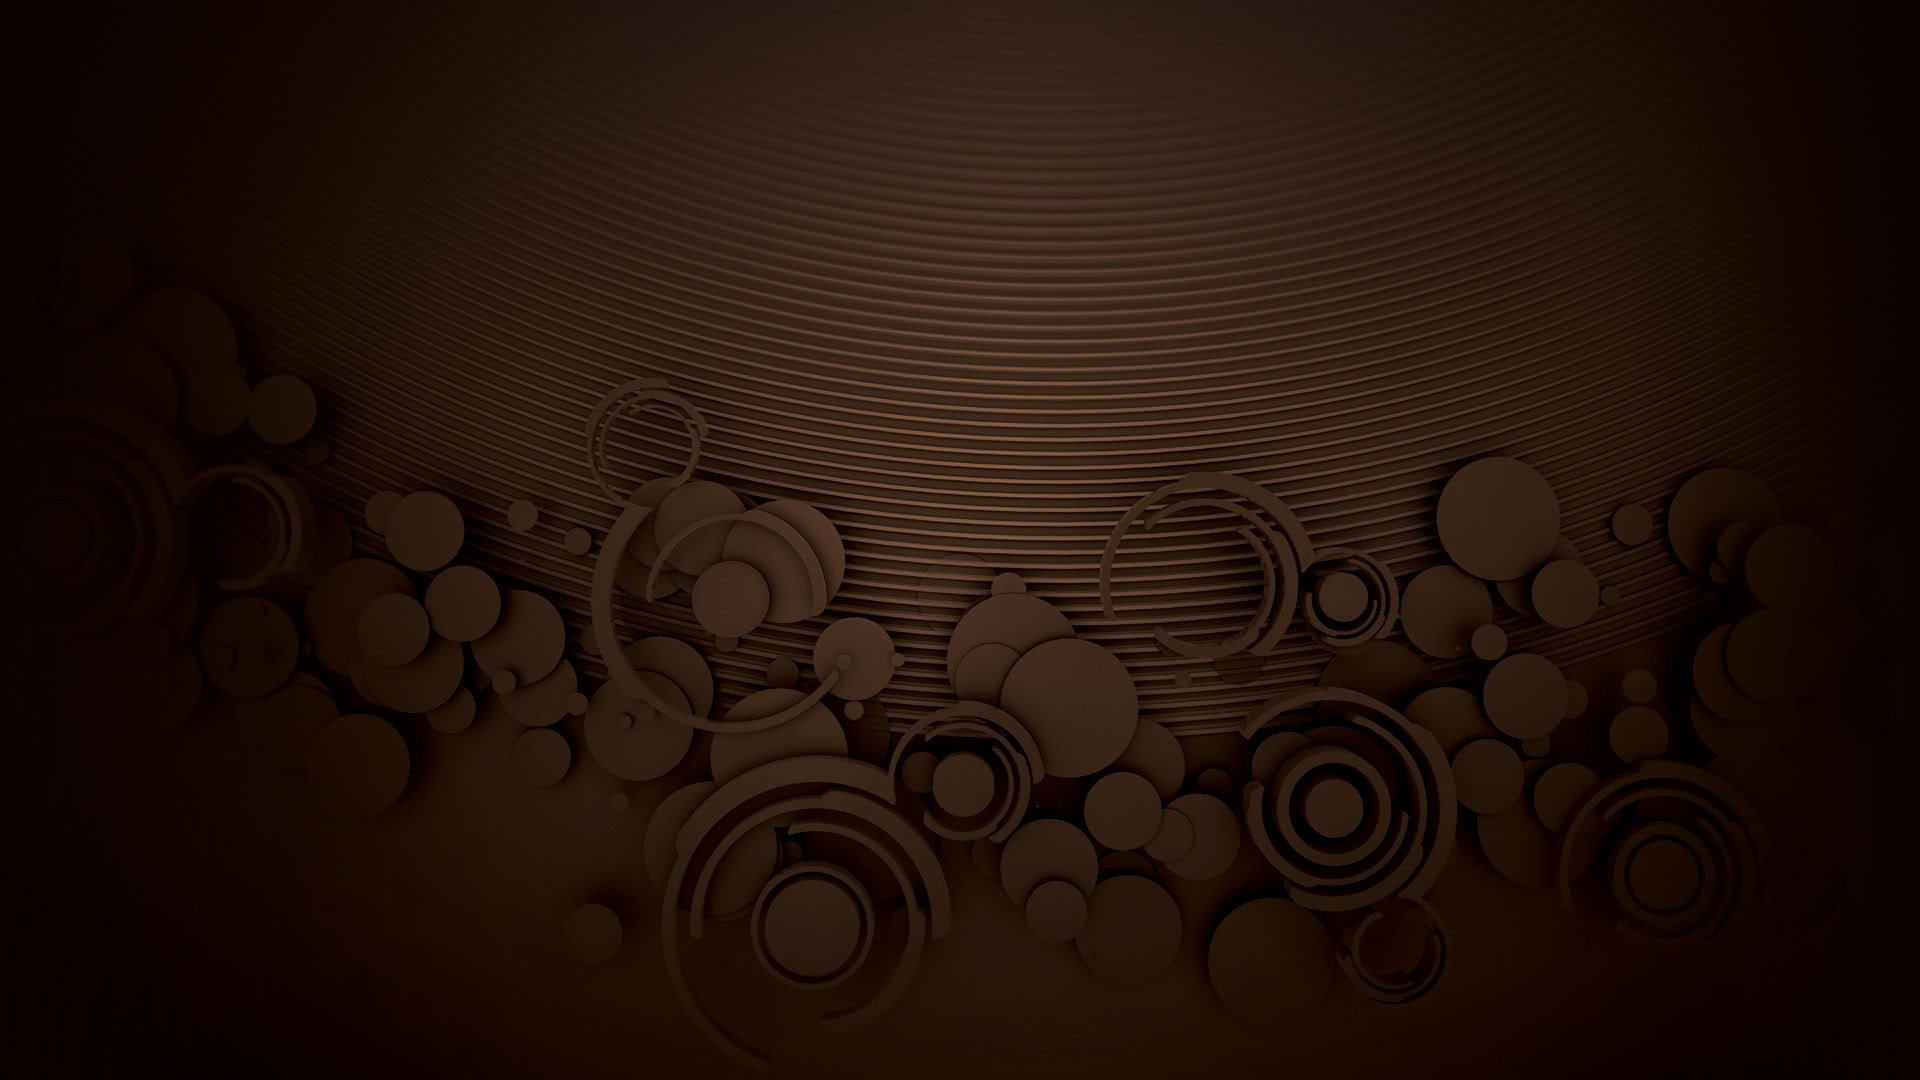 7 Brown HD Wallpapers